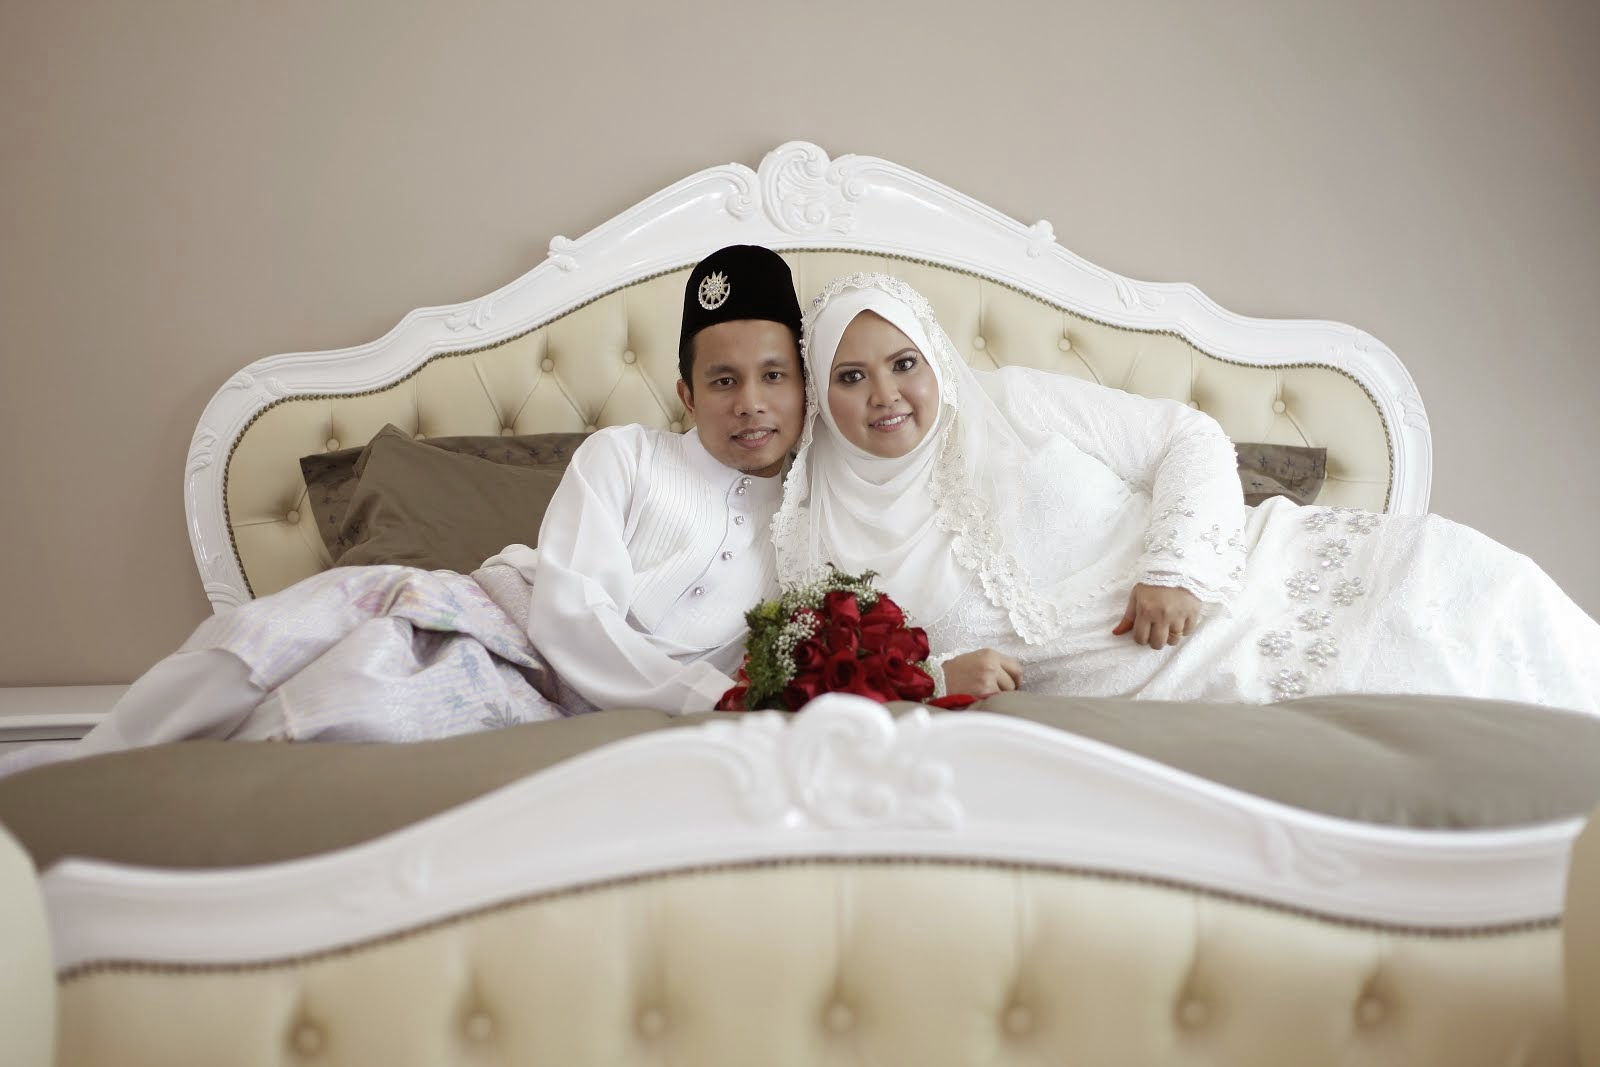 Solemnization (28th Feb 2014)